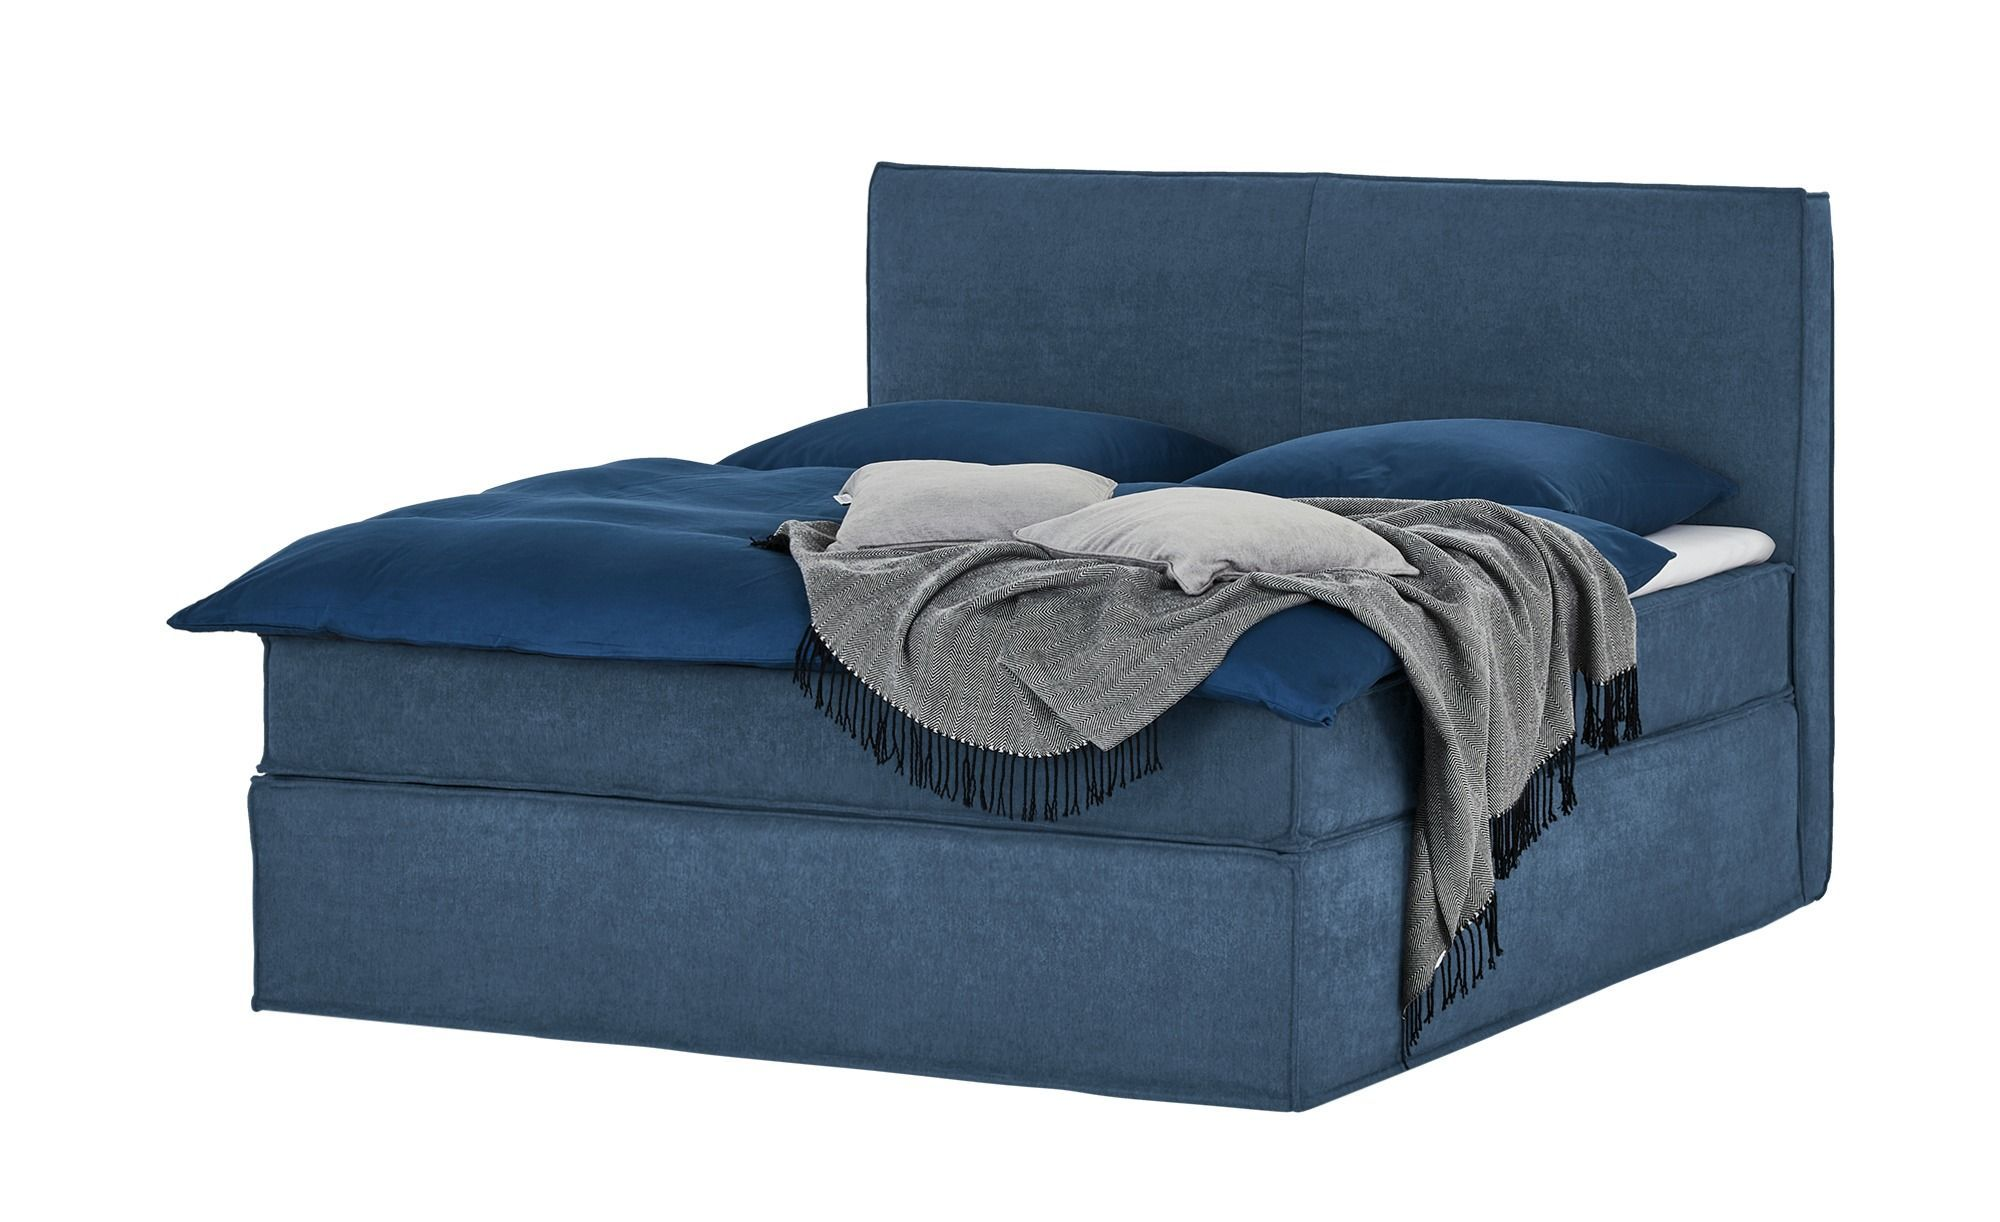 Boxspringbett Boxi Gefunden Bei Mobel Hoffner Bei Boxi Boxspringbett Diyhomelivingroom In 2020 Box Spring Bed Bed Springs Blue Bedding